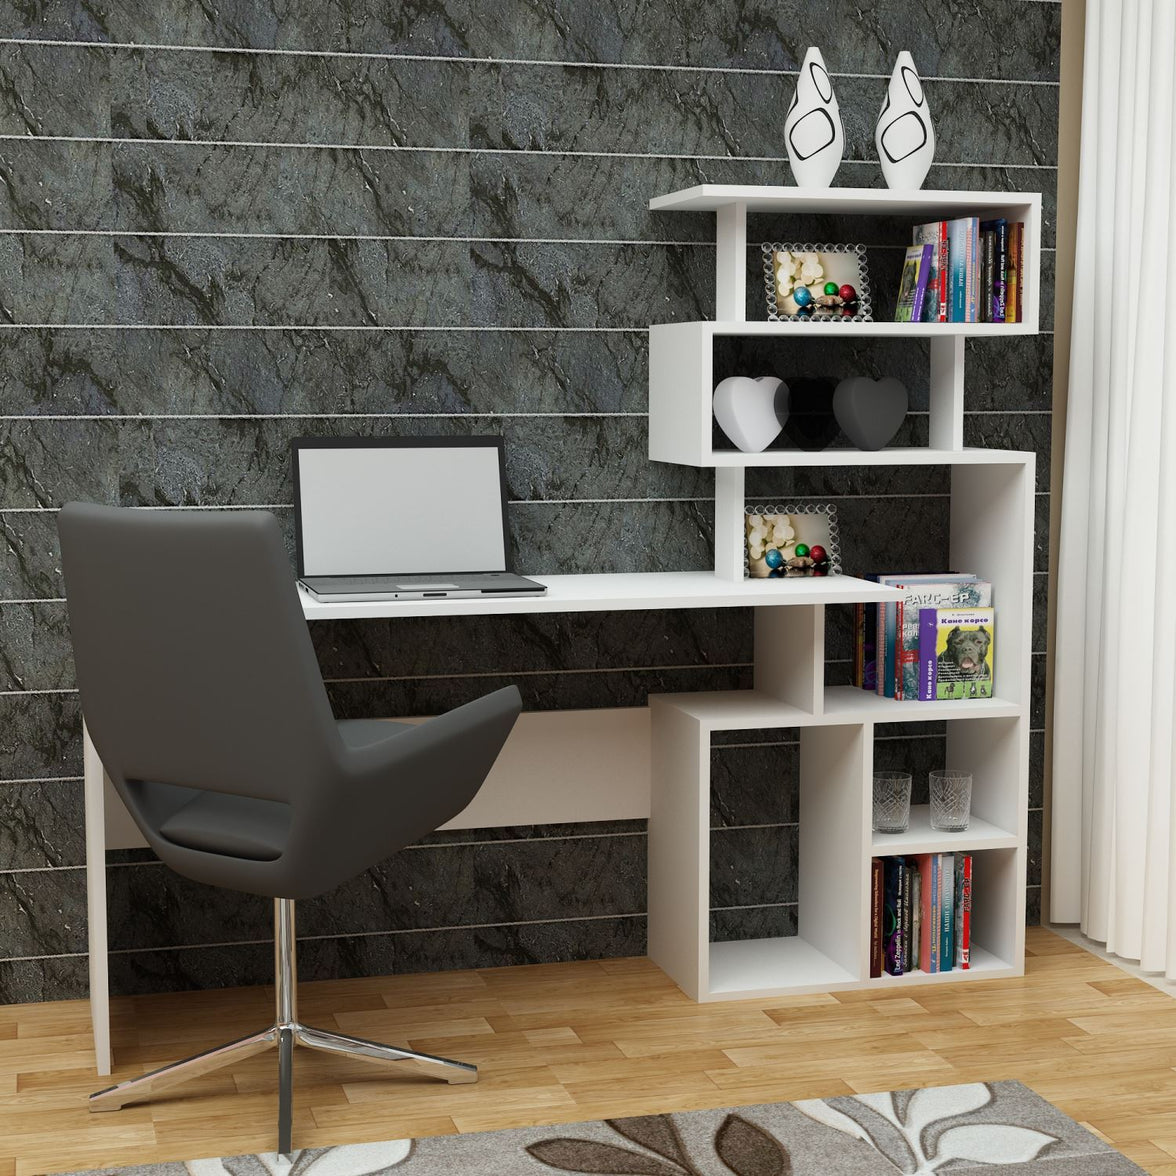 UPGRADE YOUR ENERGY WITH A PLEASANT AND COMFORTABLE WORKING AREA